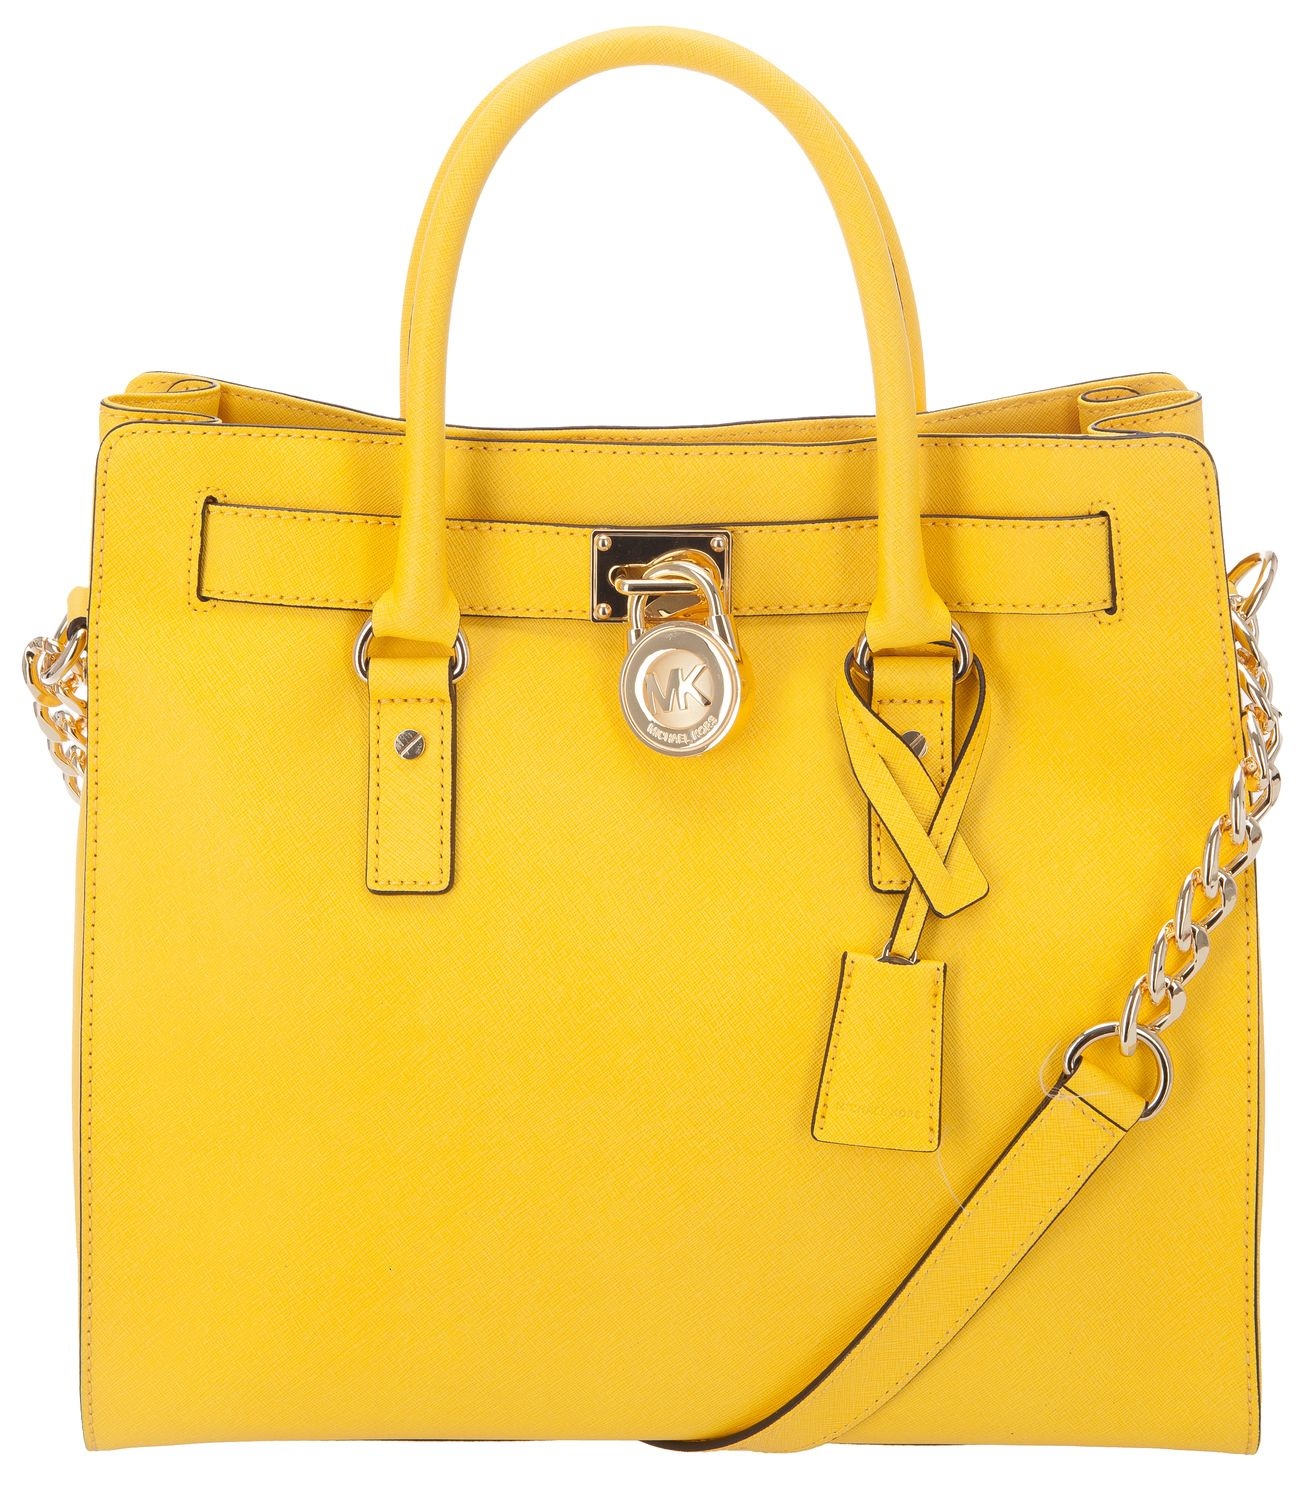 yellow handbag michael kors kors michael kors. Black Bedroom Furniture Sets. Home Design Ideas